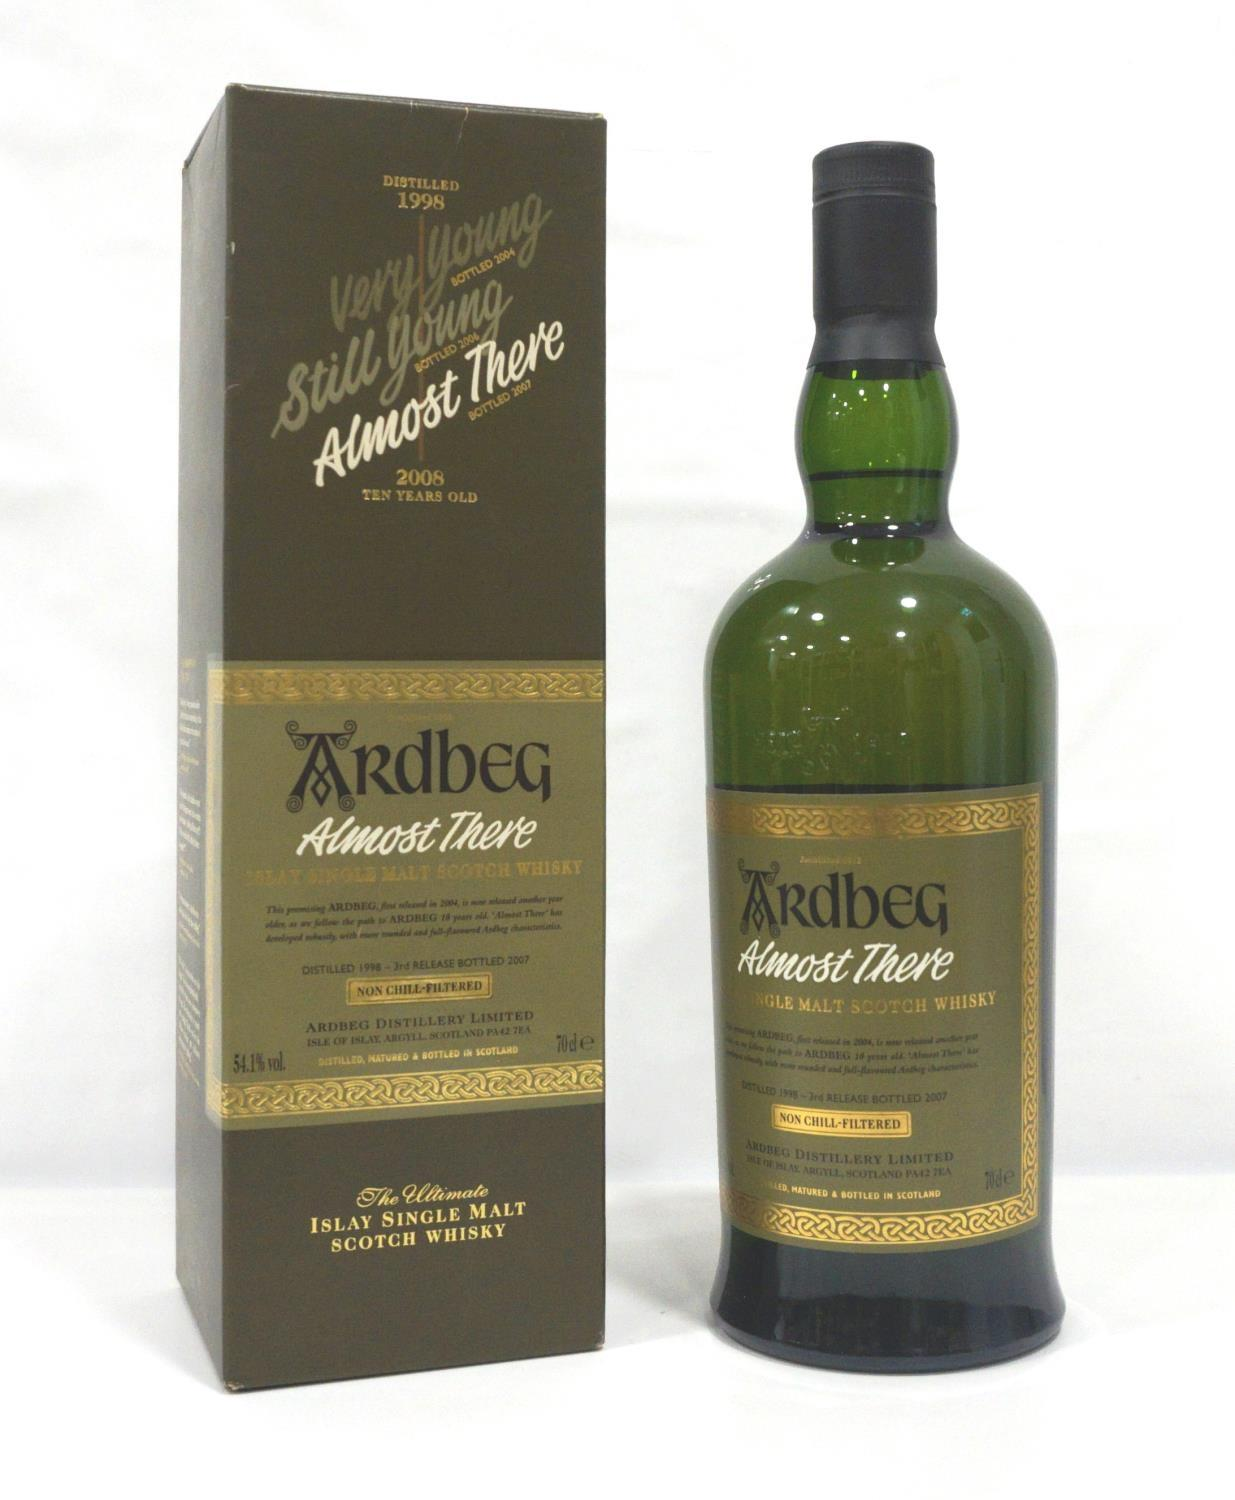 ARDBEG ALMOST THERE The third release in the series of Ardbeg released on the run up to the new 10